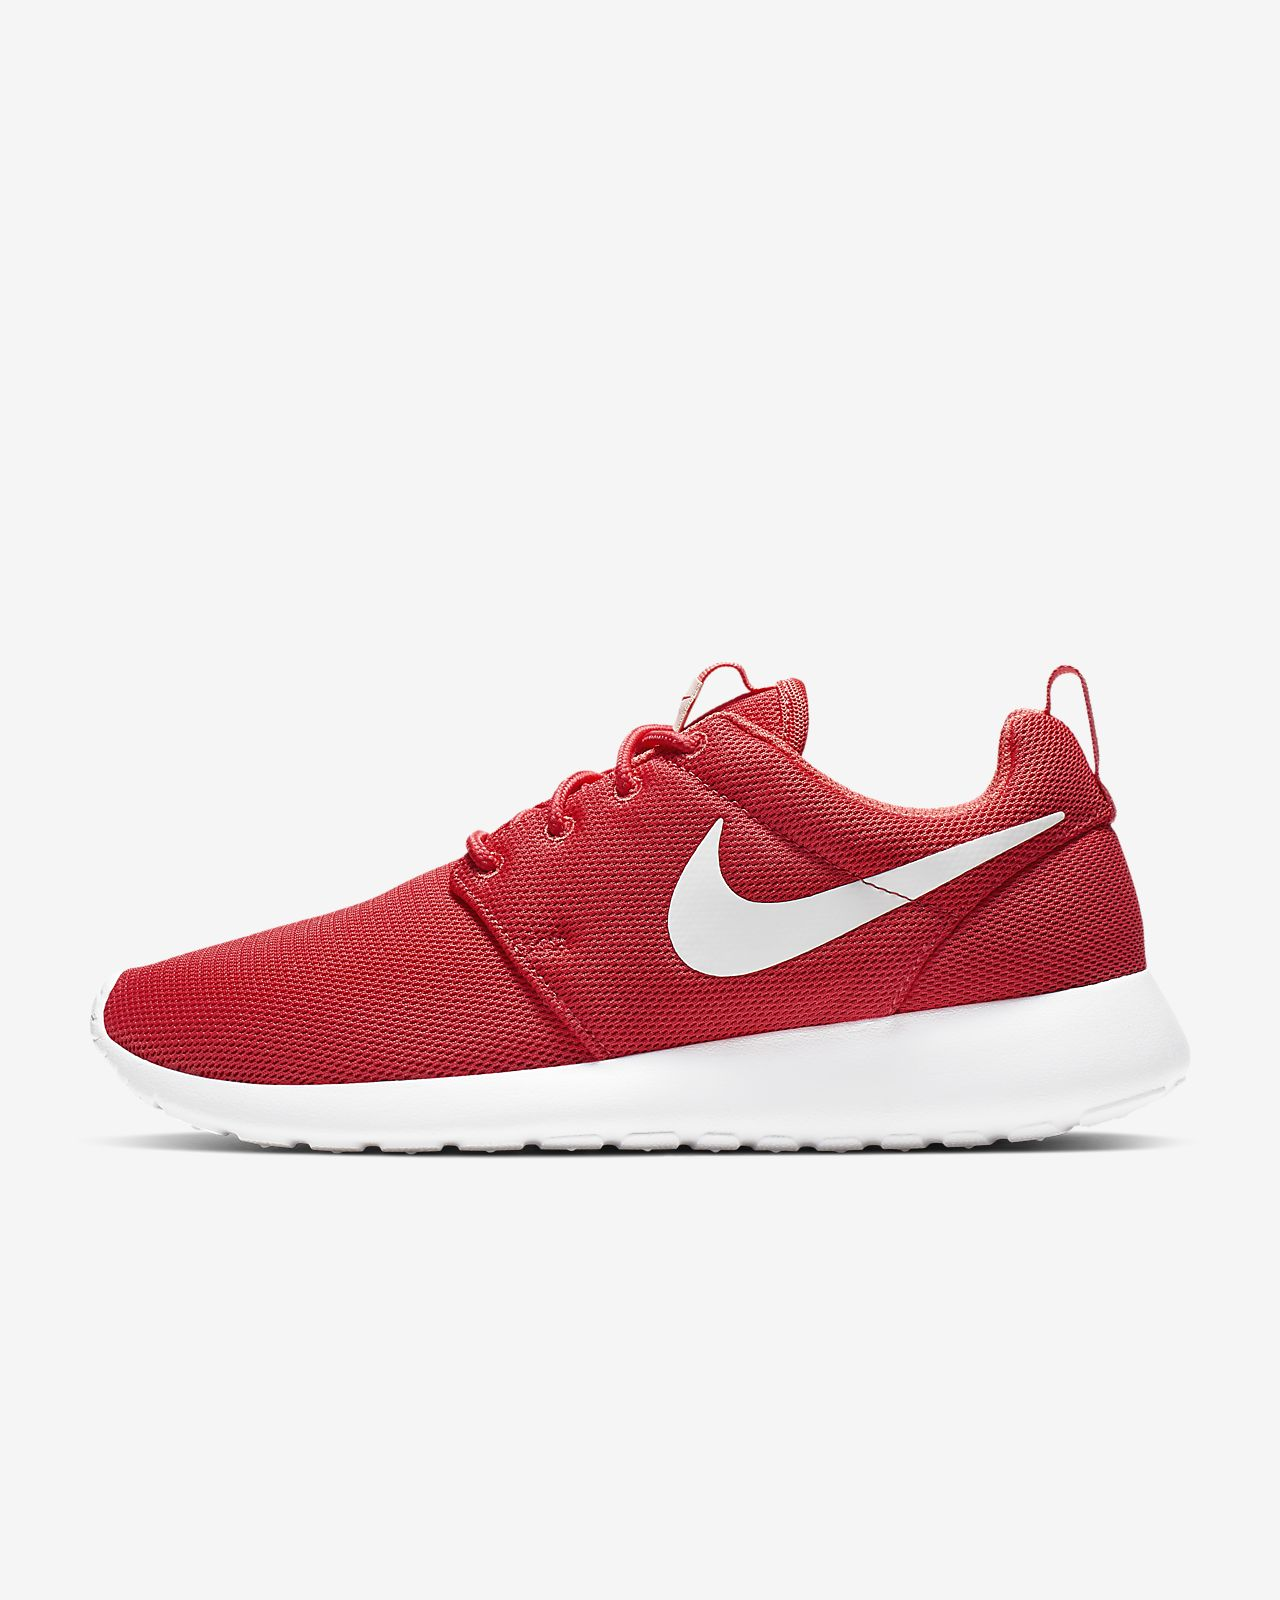 229aa66154 Nike Roshe One Women s Shoe. Nike.com